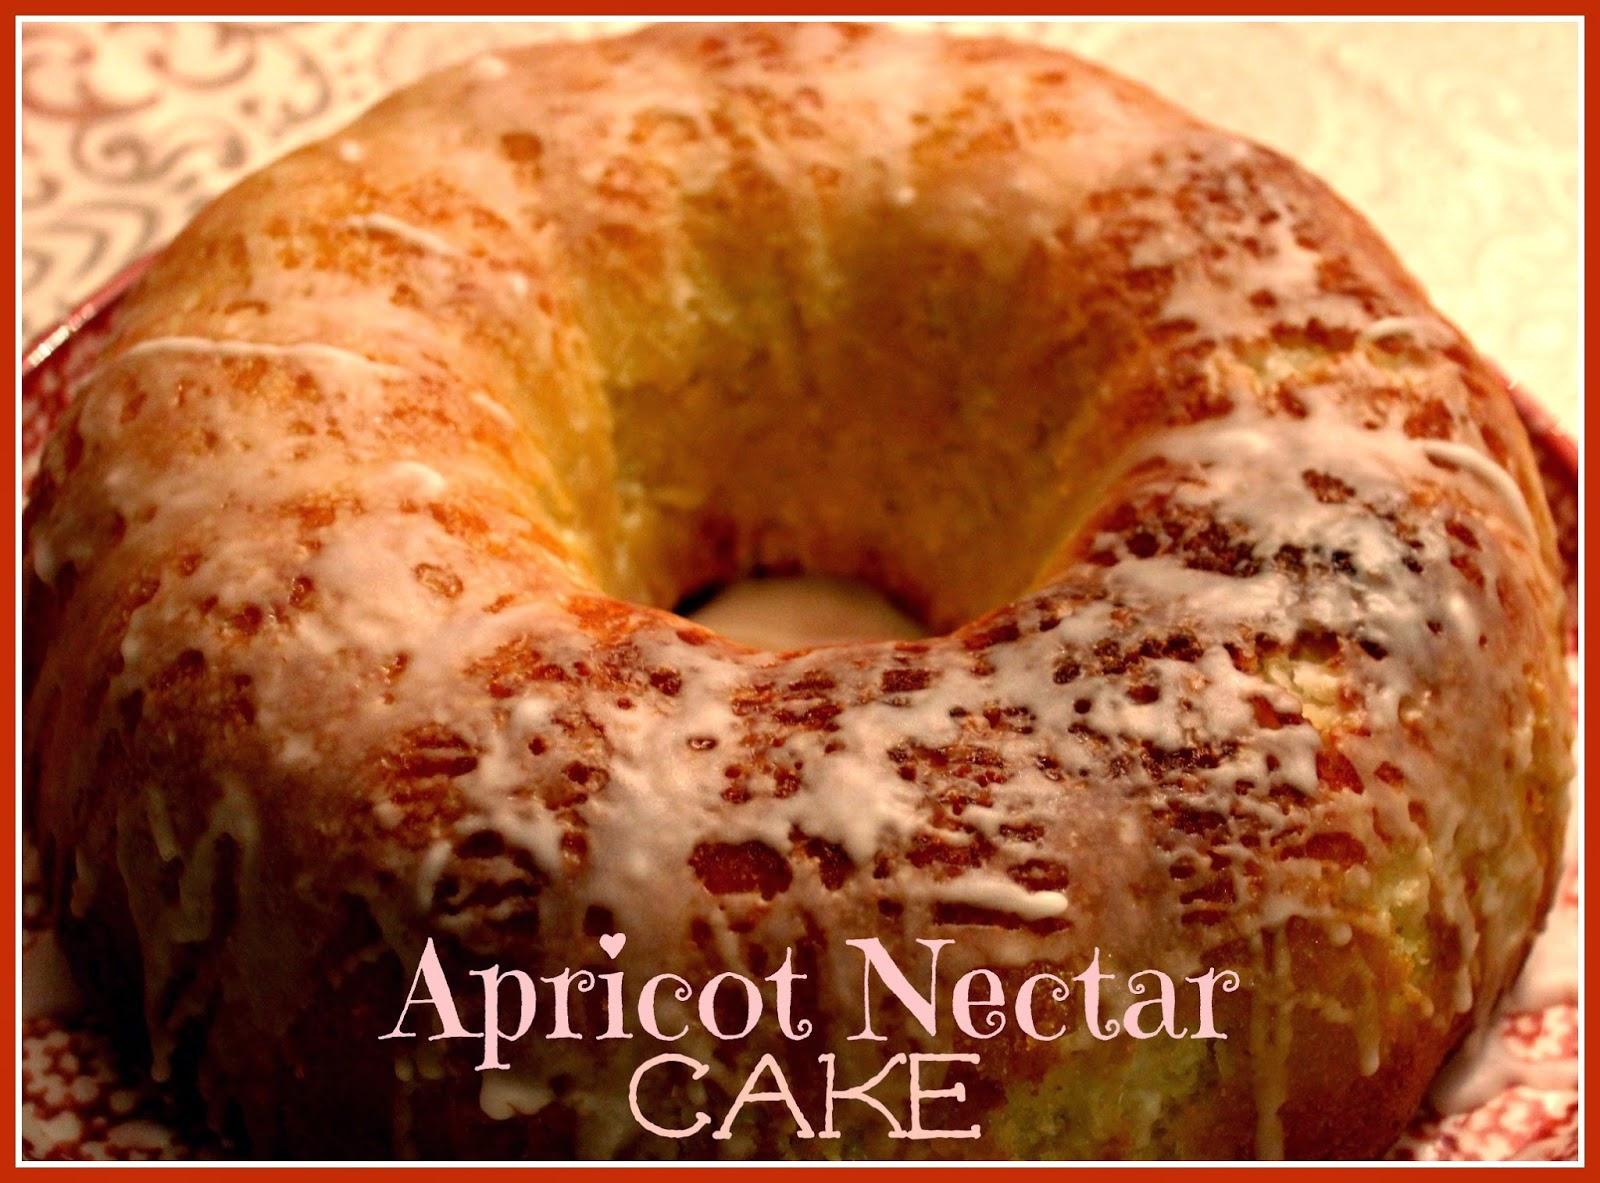 How To Make Apricot Nectar Cake